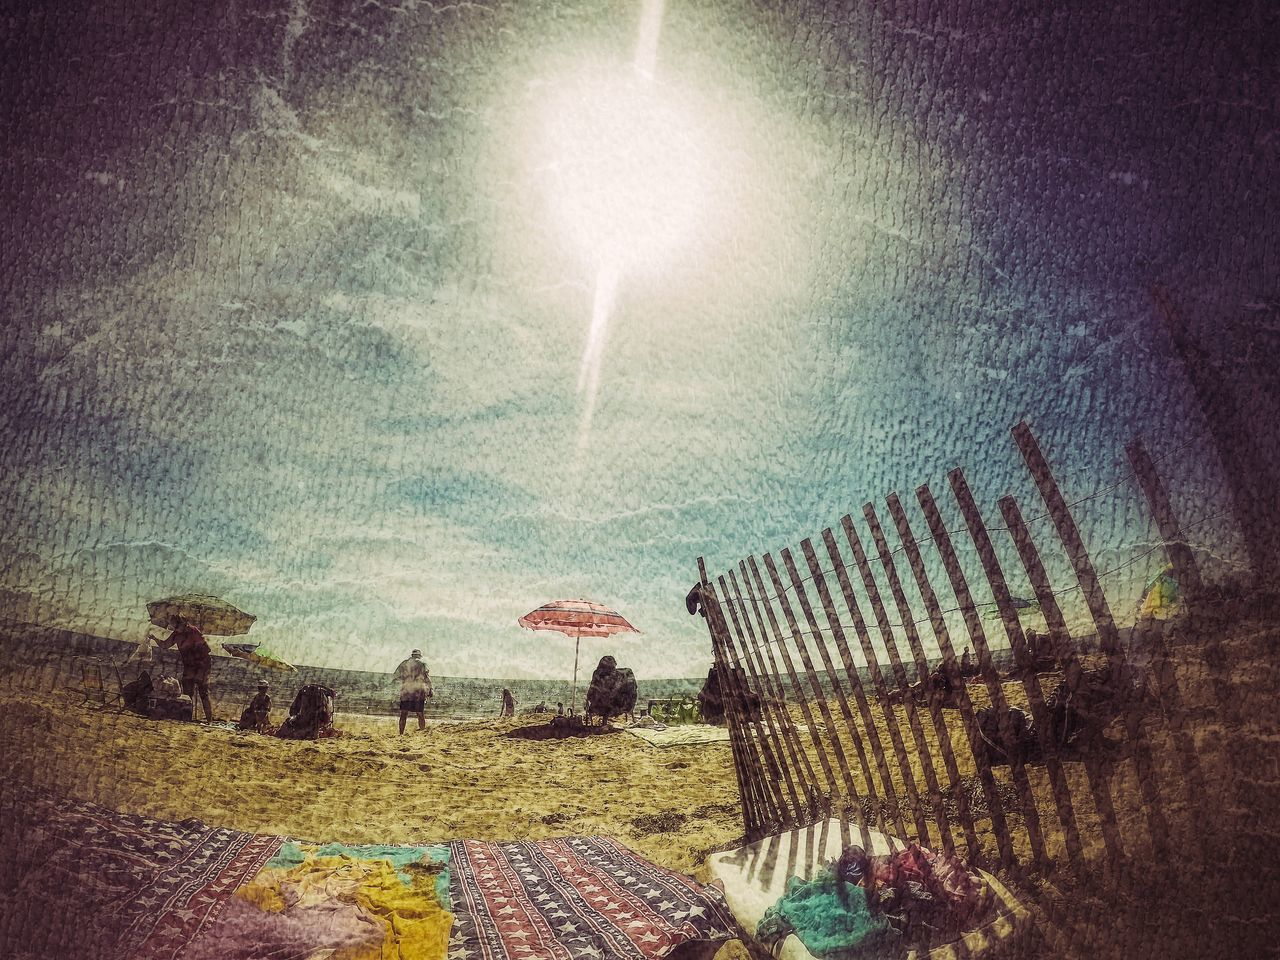 Summer's not over yet😊😊 Misquamicut Beach, Rhode Island Shot on GoPro Hero 4, Edited on iPhone 6plus www.eSantosStudios.com 20-September-2015 Beach Beachphotography Life Is A Beach Beach Photography Beach Life On The Beach Beachlife IPhoneography IPhone Iphoneonly The Essence Of Summer